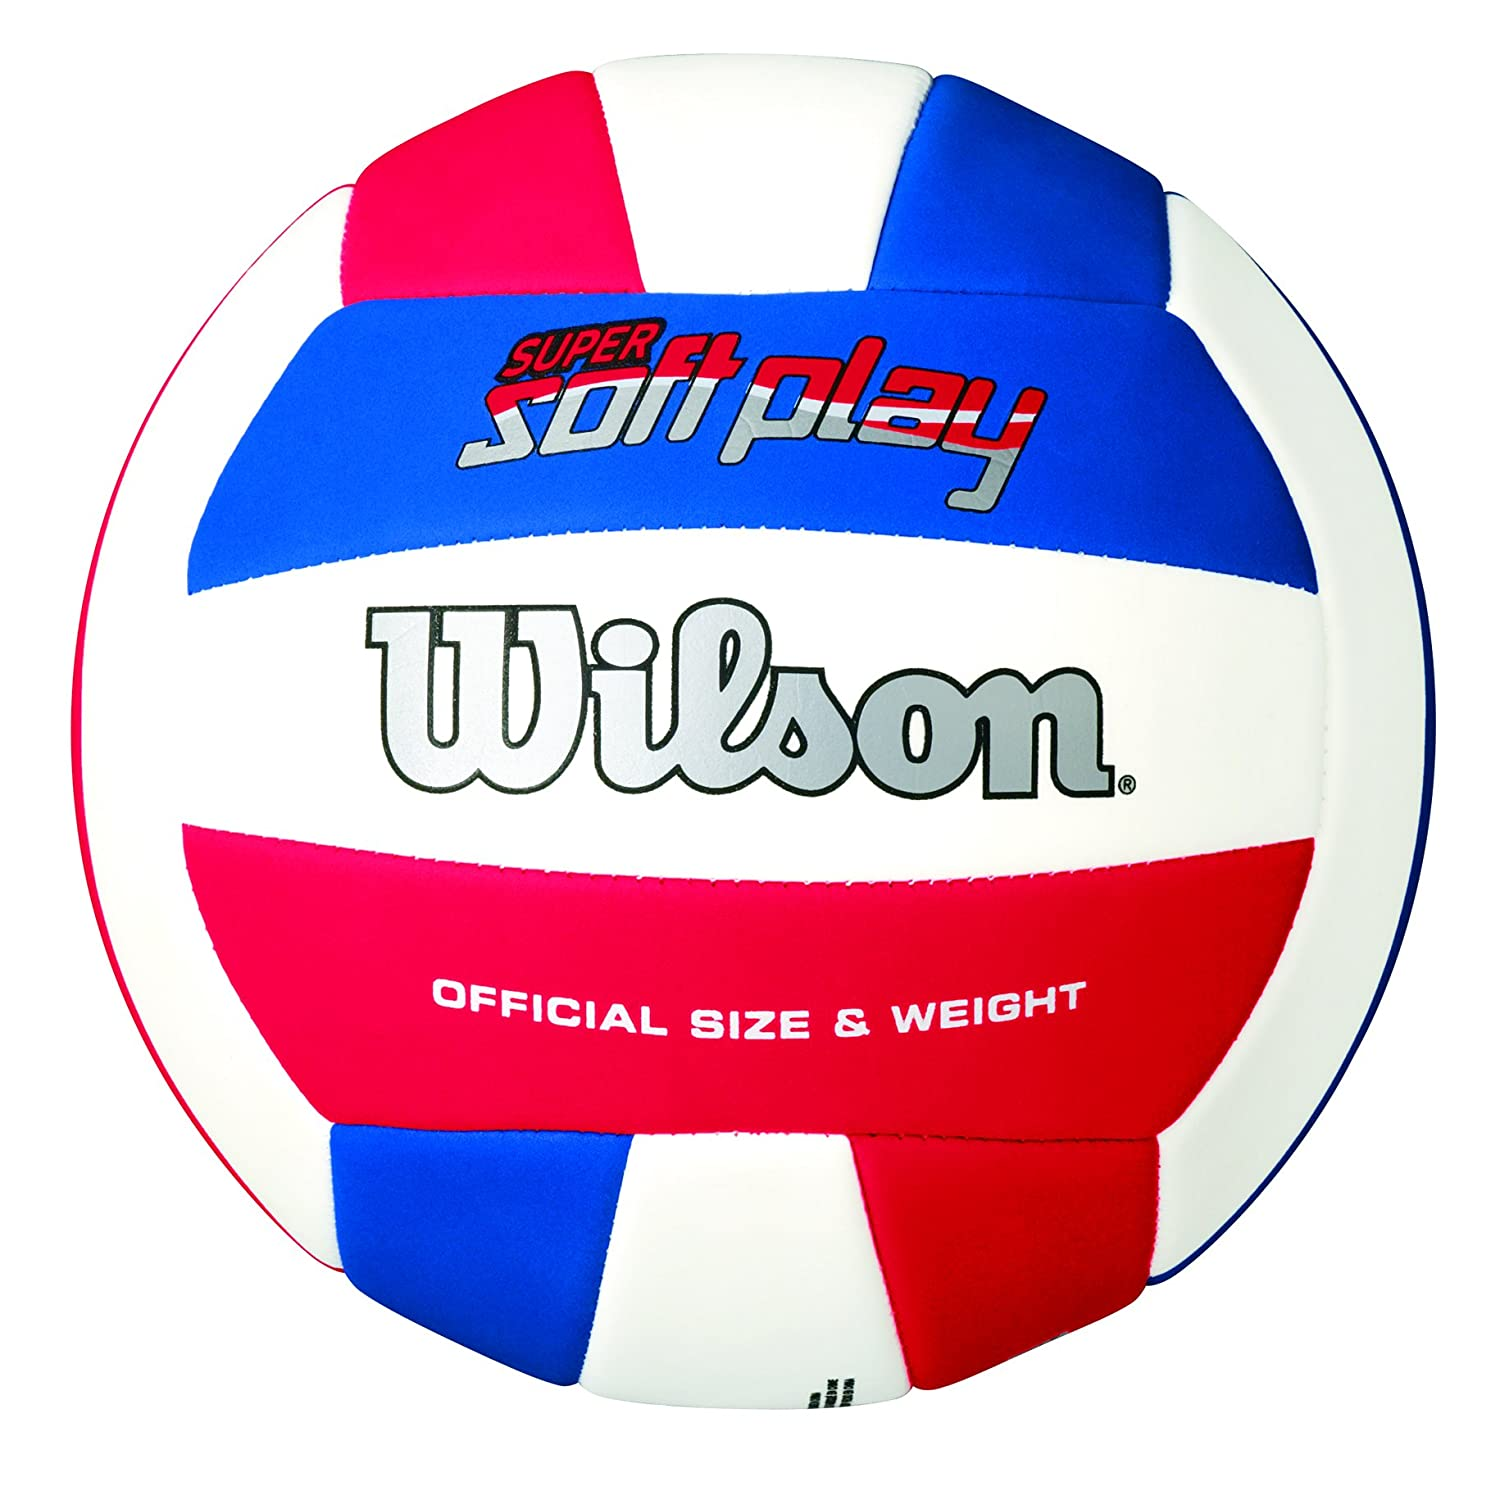 Wilson Super Soft Play - Pelota, color rojo/blanco / azul, talla única Wilson Teamsport WTH3595ID